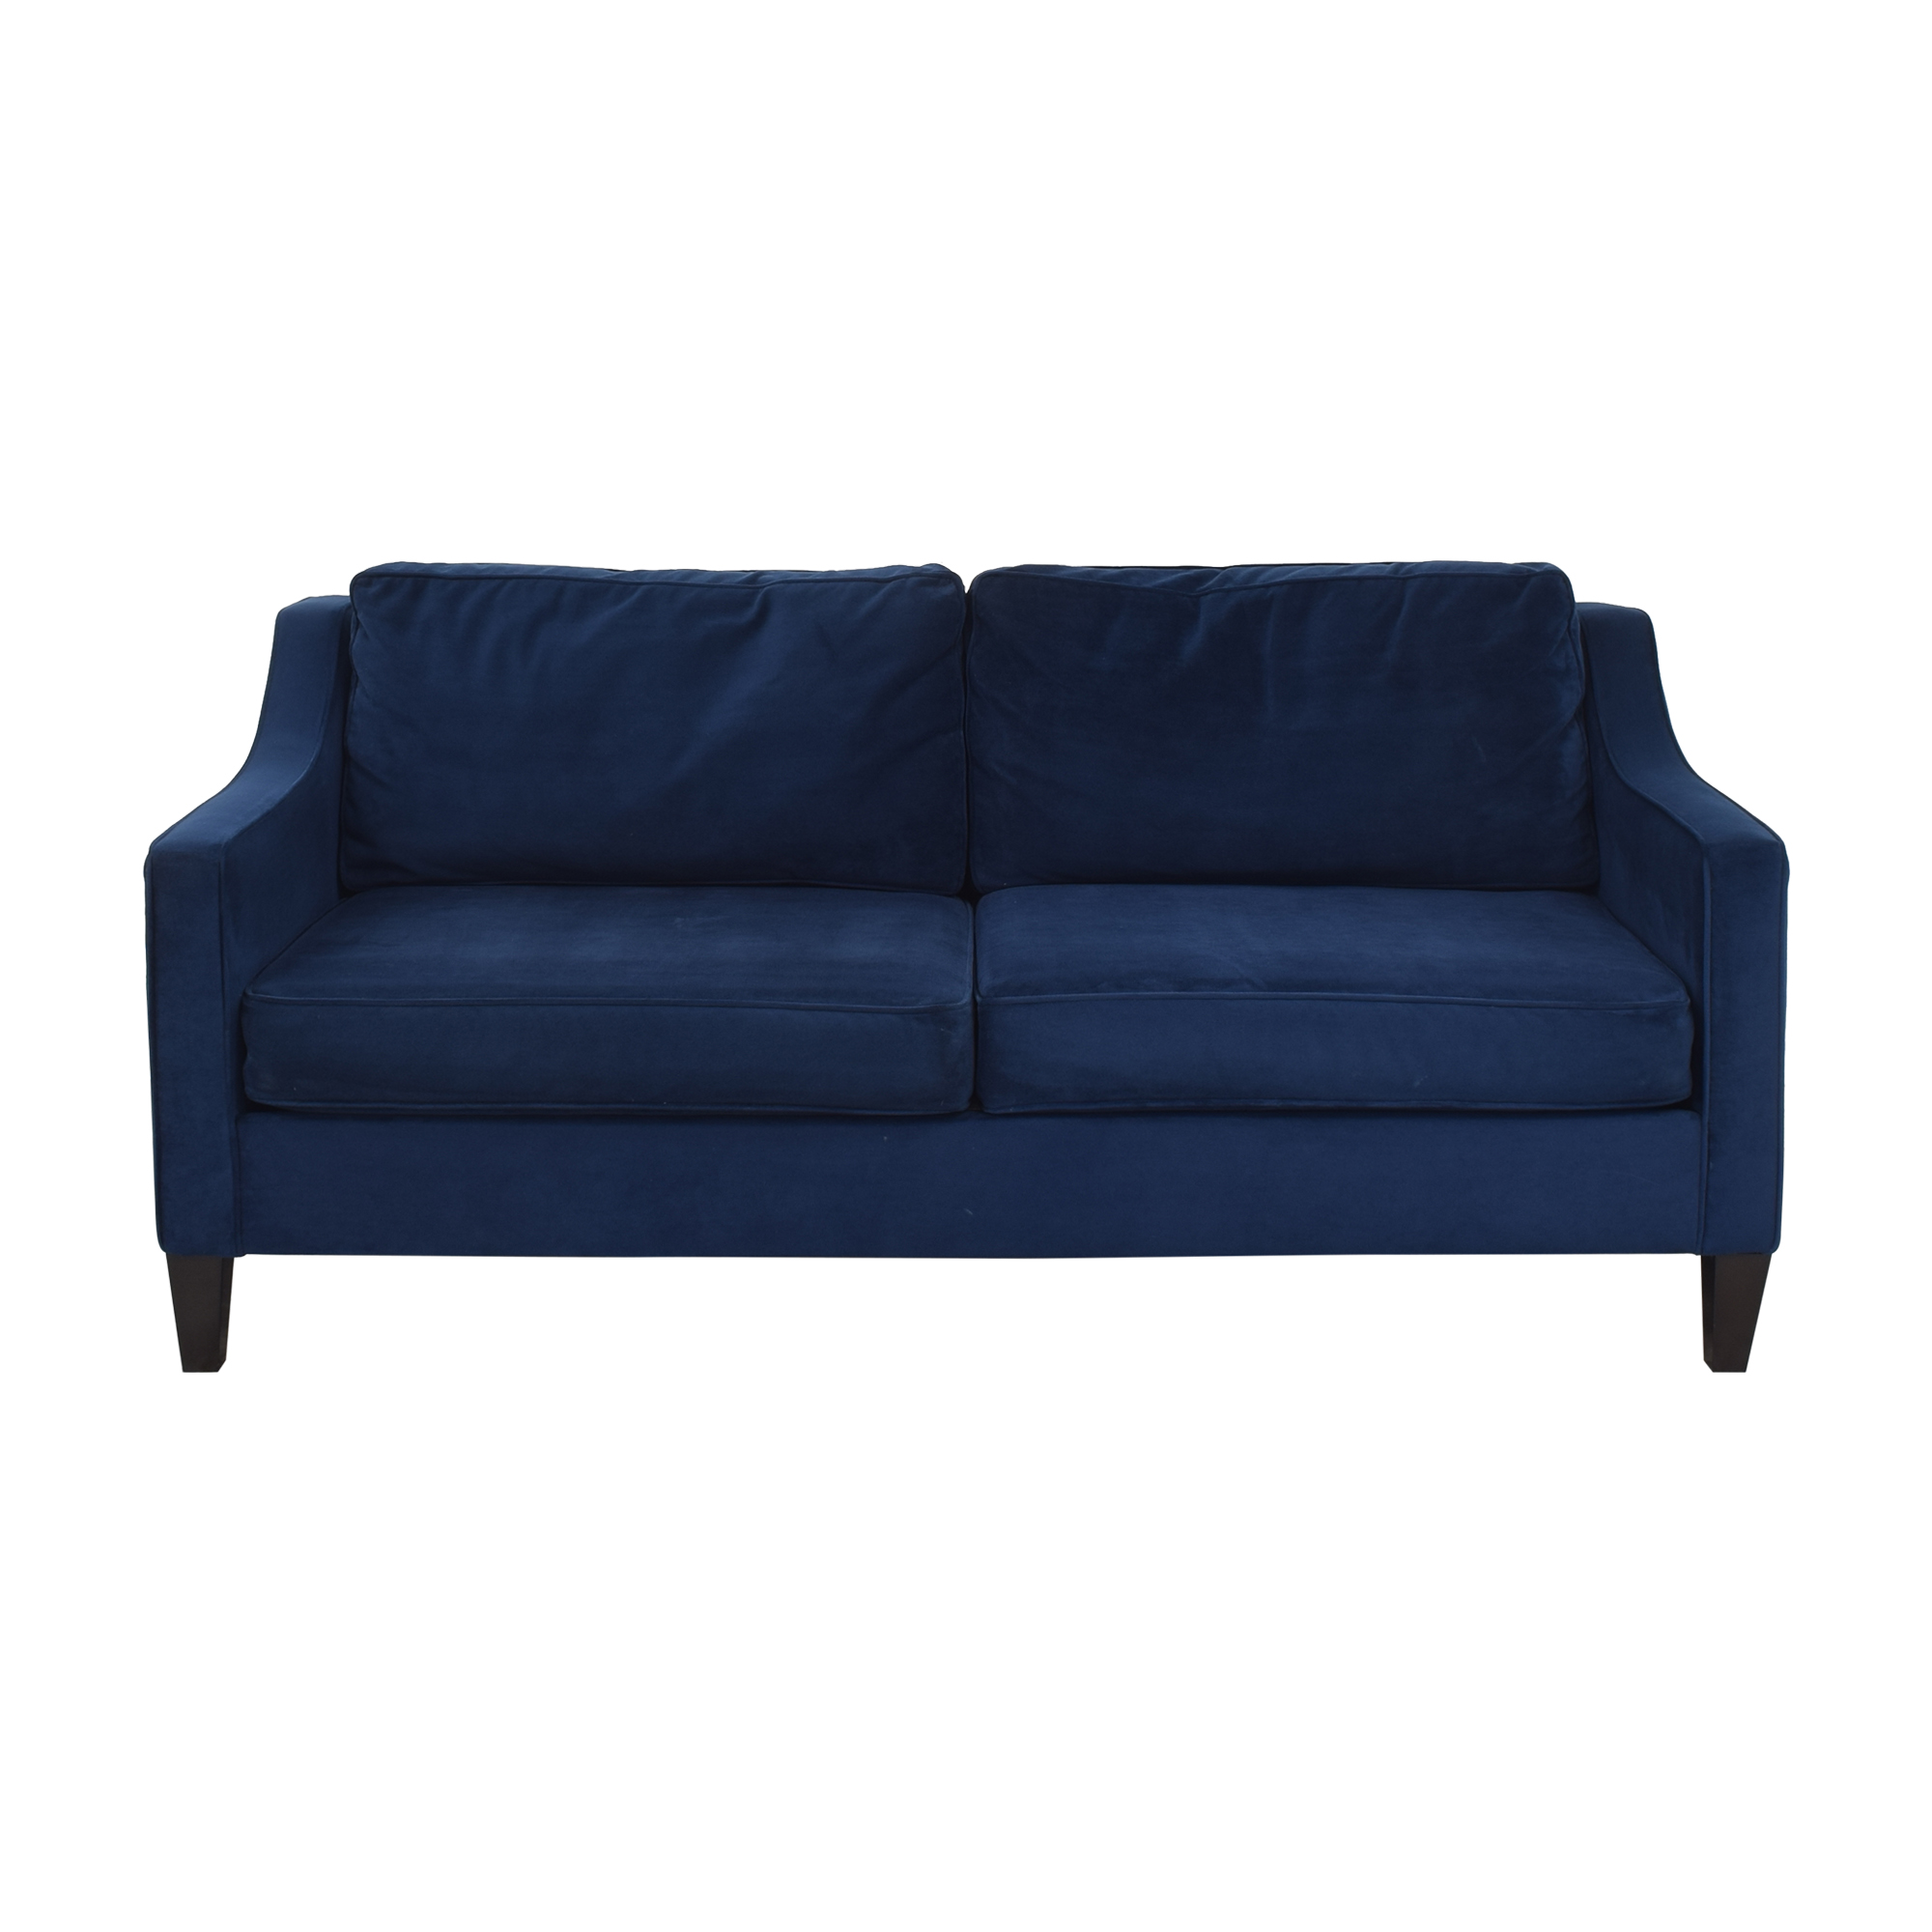 West Elm Paidge Sofa West Elm